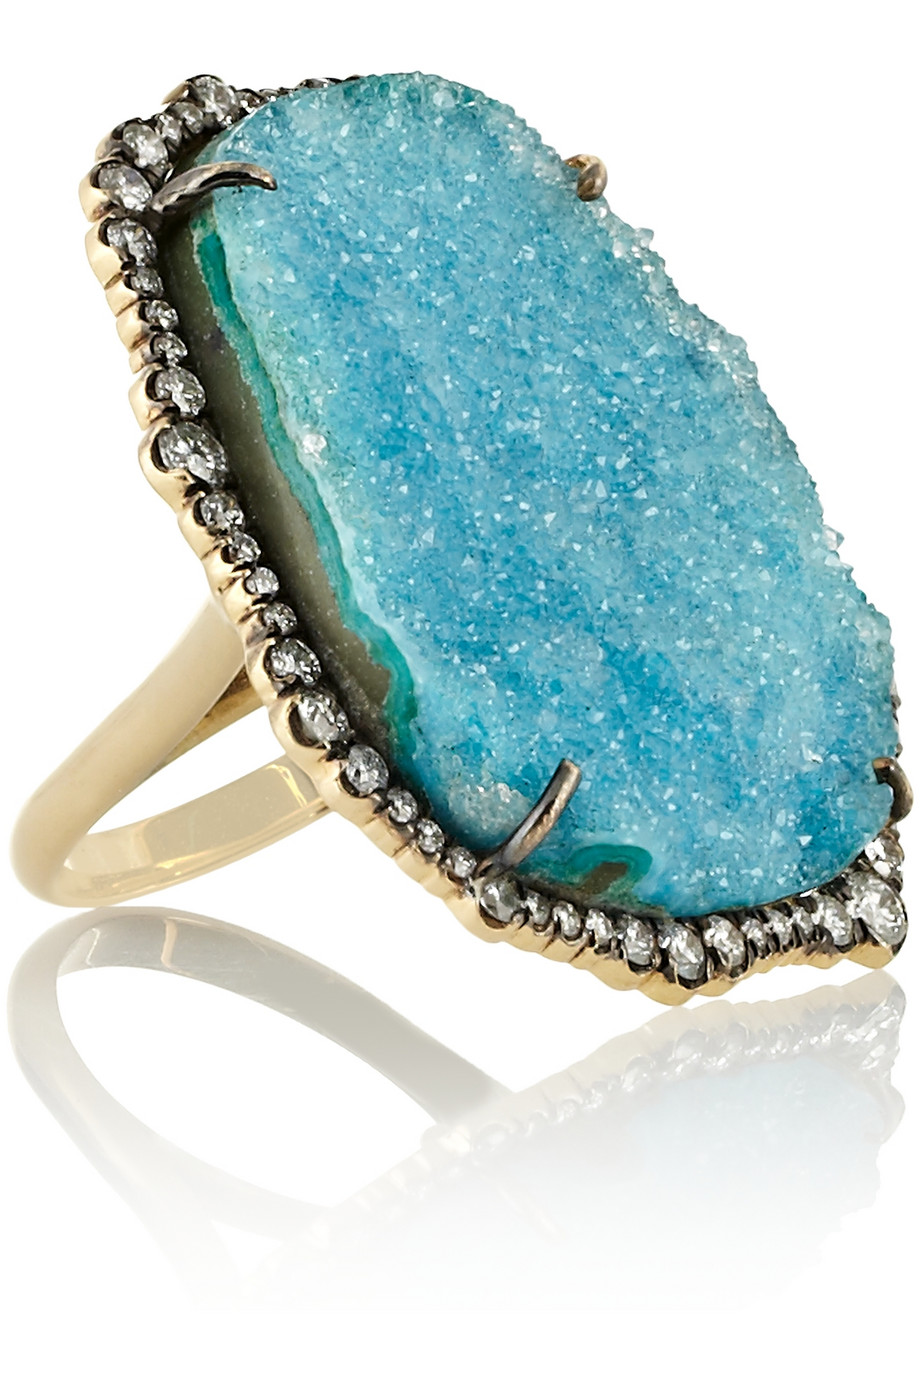 Kimberly McDonald 18-karat White Gold, Opal And Diamond Ring - Turquoise